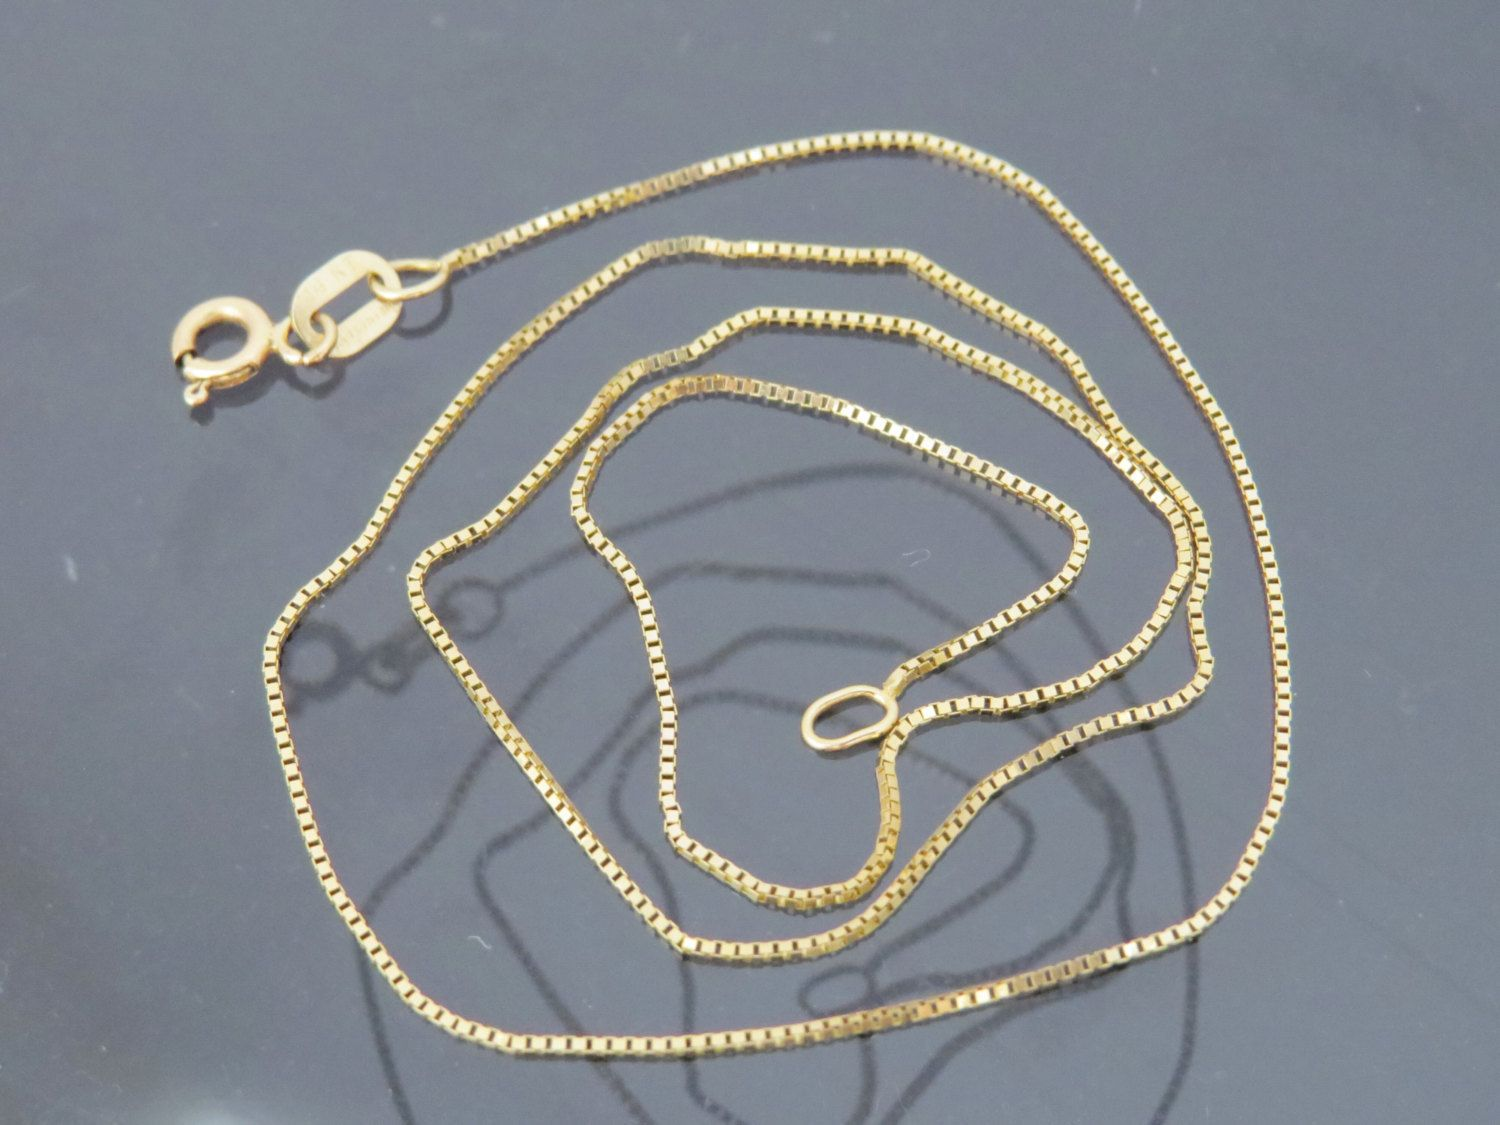 14k gold box chain Necklace Square cube Italy made european geometric link 1.31  mm wide 20 inch long womens vintage fine jewelry